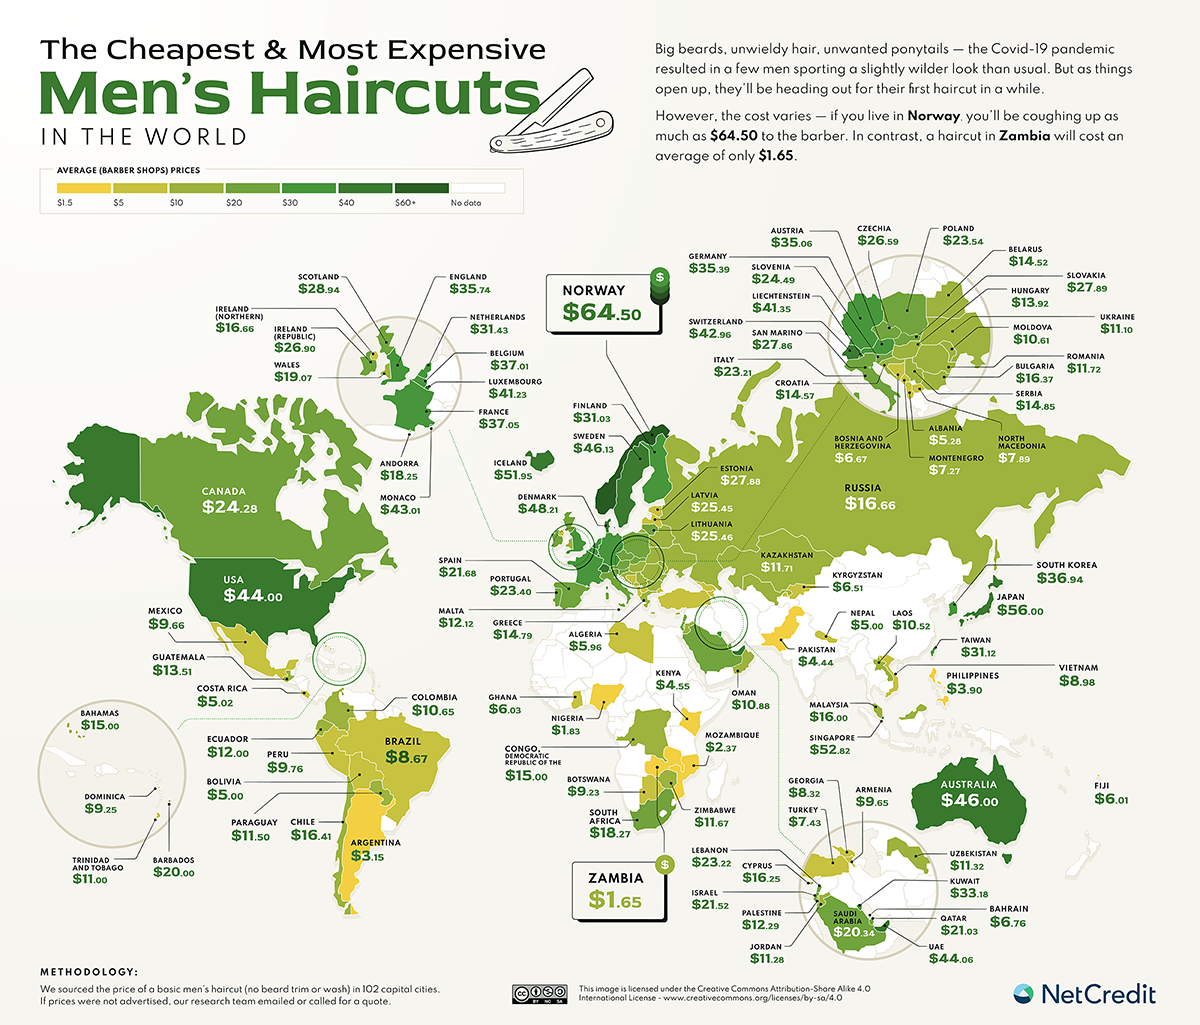 A Man's Haircut in Norway is the World's Most Expensive